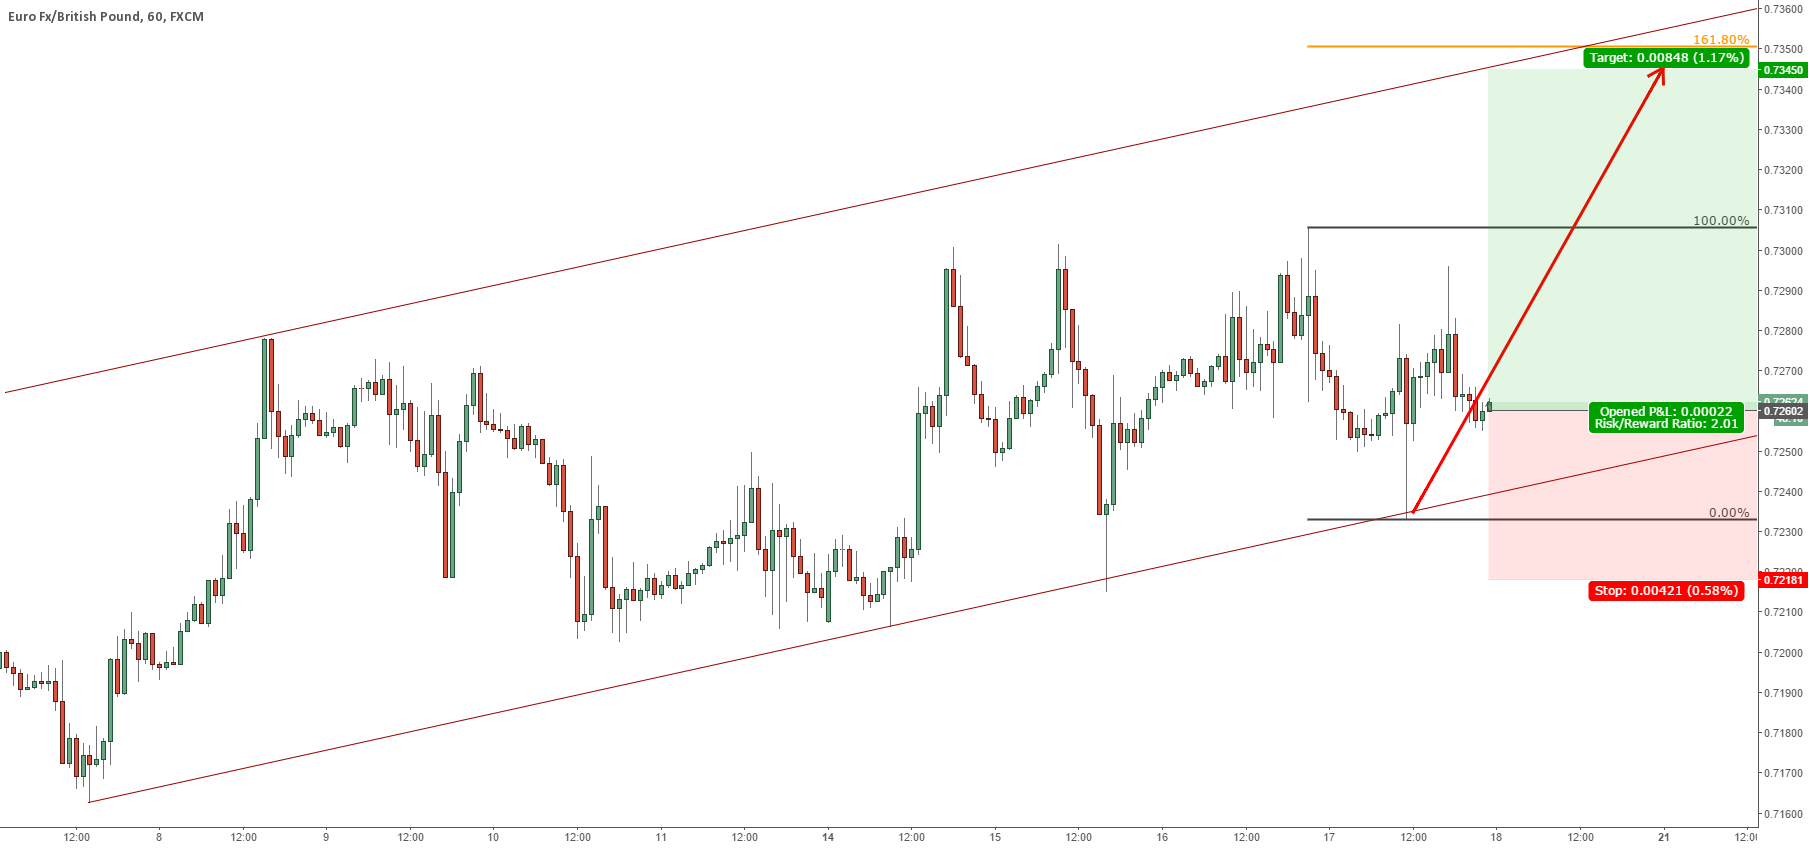 EURGBP PERHAPS THE LAST WAVE UP BEFORE MAJOR FALL